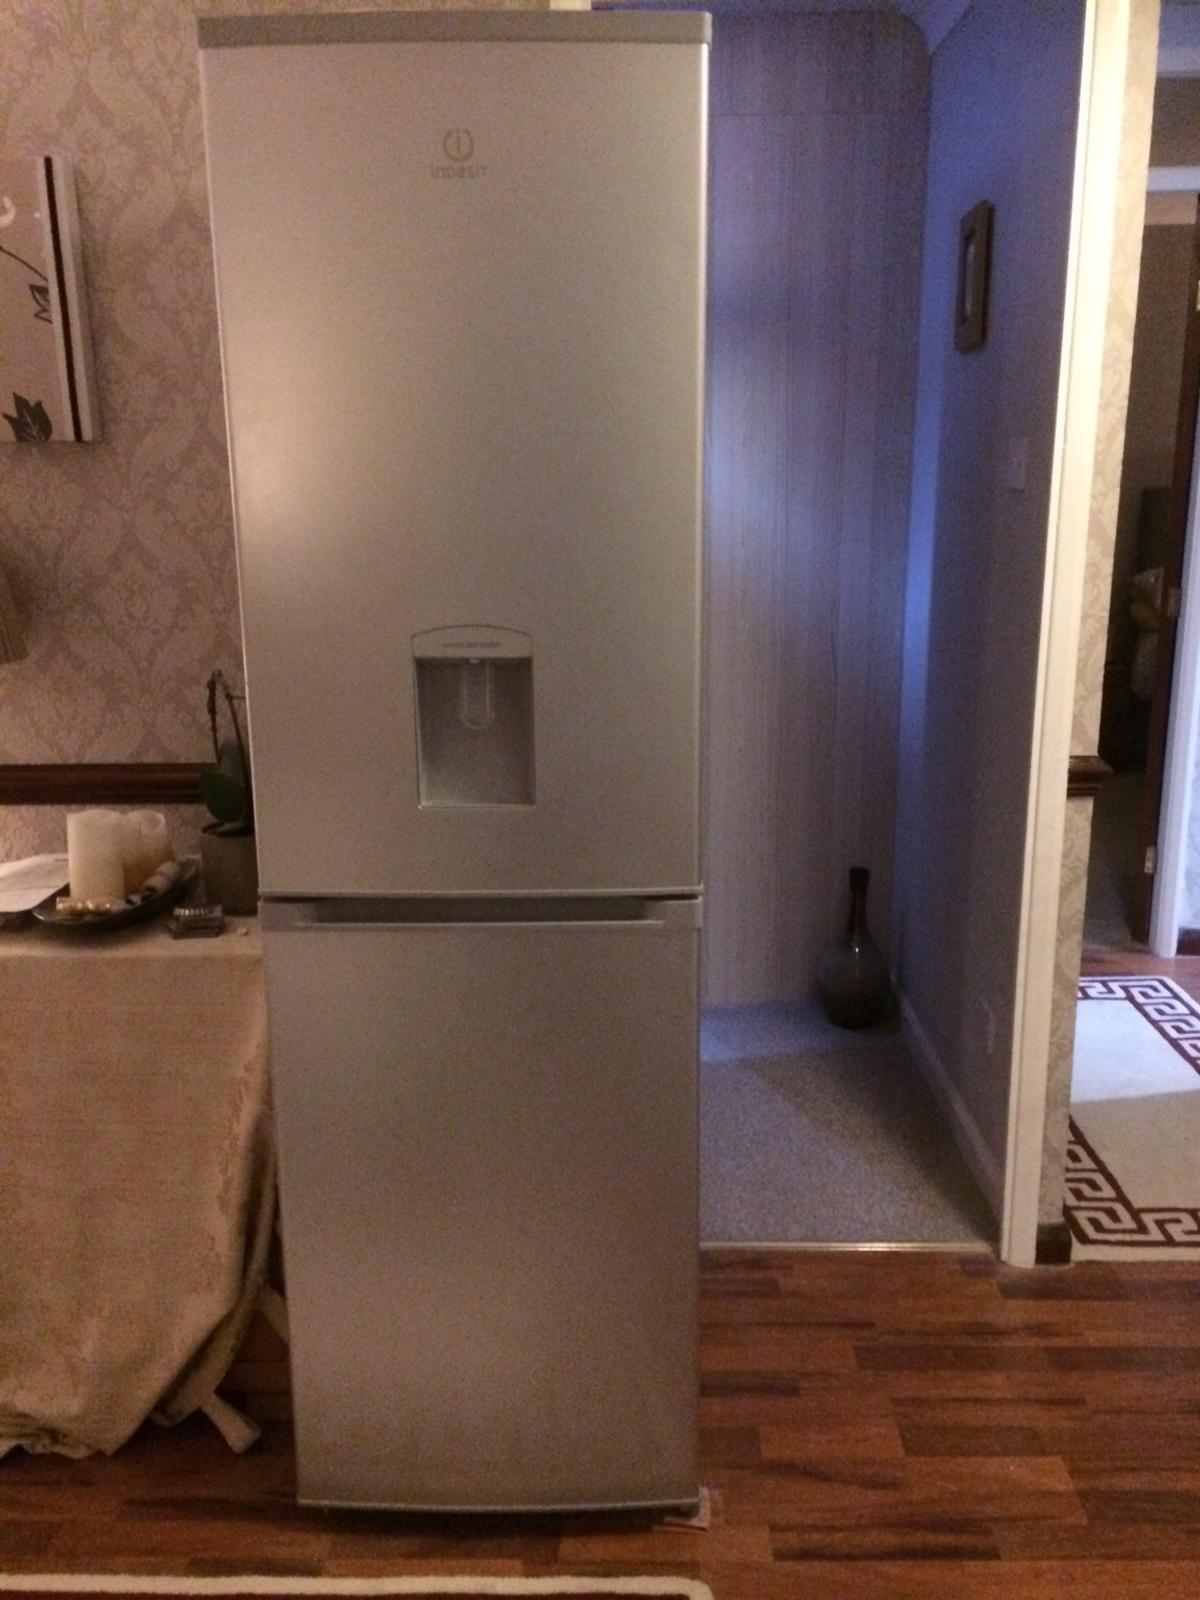 Indesit fridge freezer (silver) 50/50 split with water dispenser. In good working order we have just had a kitchen refit so no longer require this appliance. Will accept £60. Collection only please